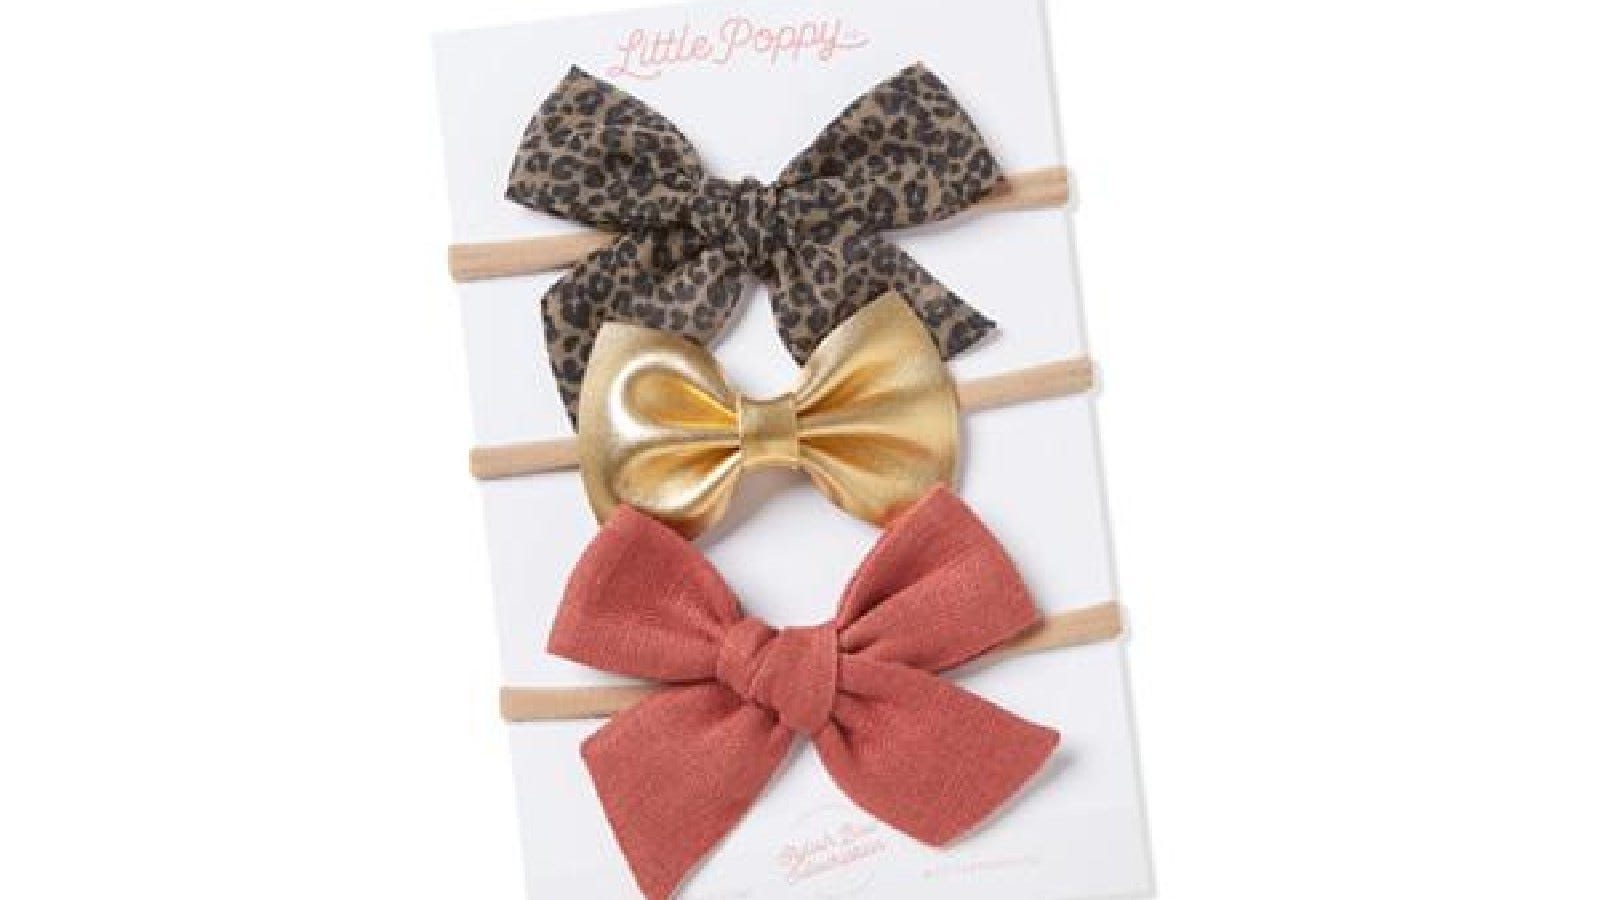 Three Little Poppy bow hair ties.